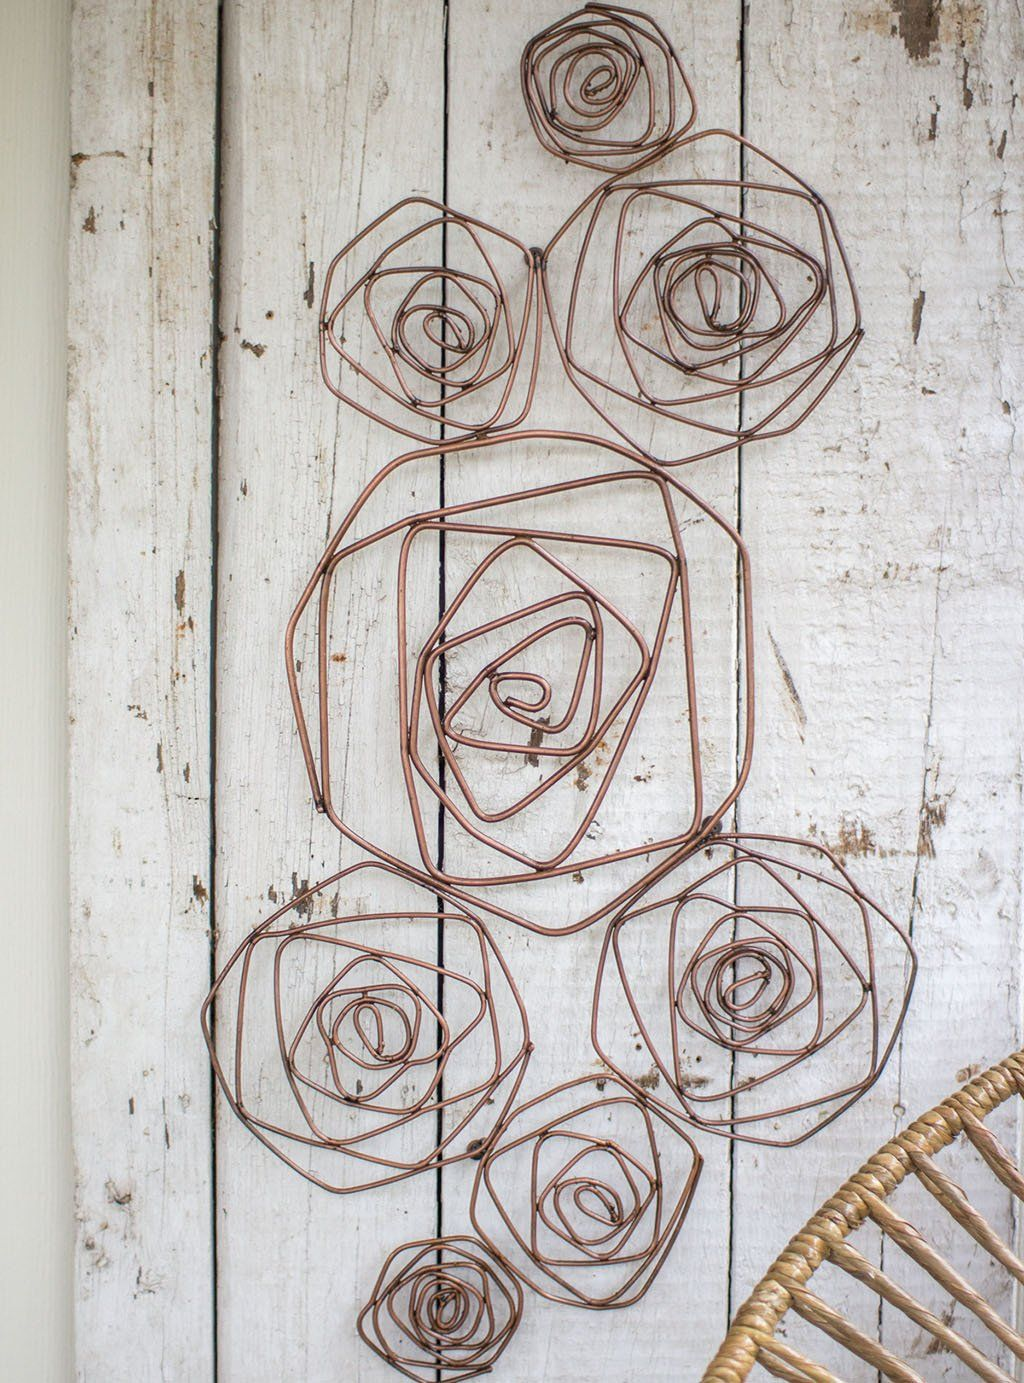 Rose Wall Sculpture | Wall sculptures, Rose and Walls